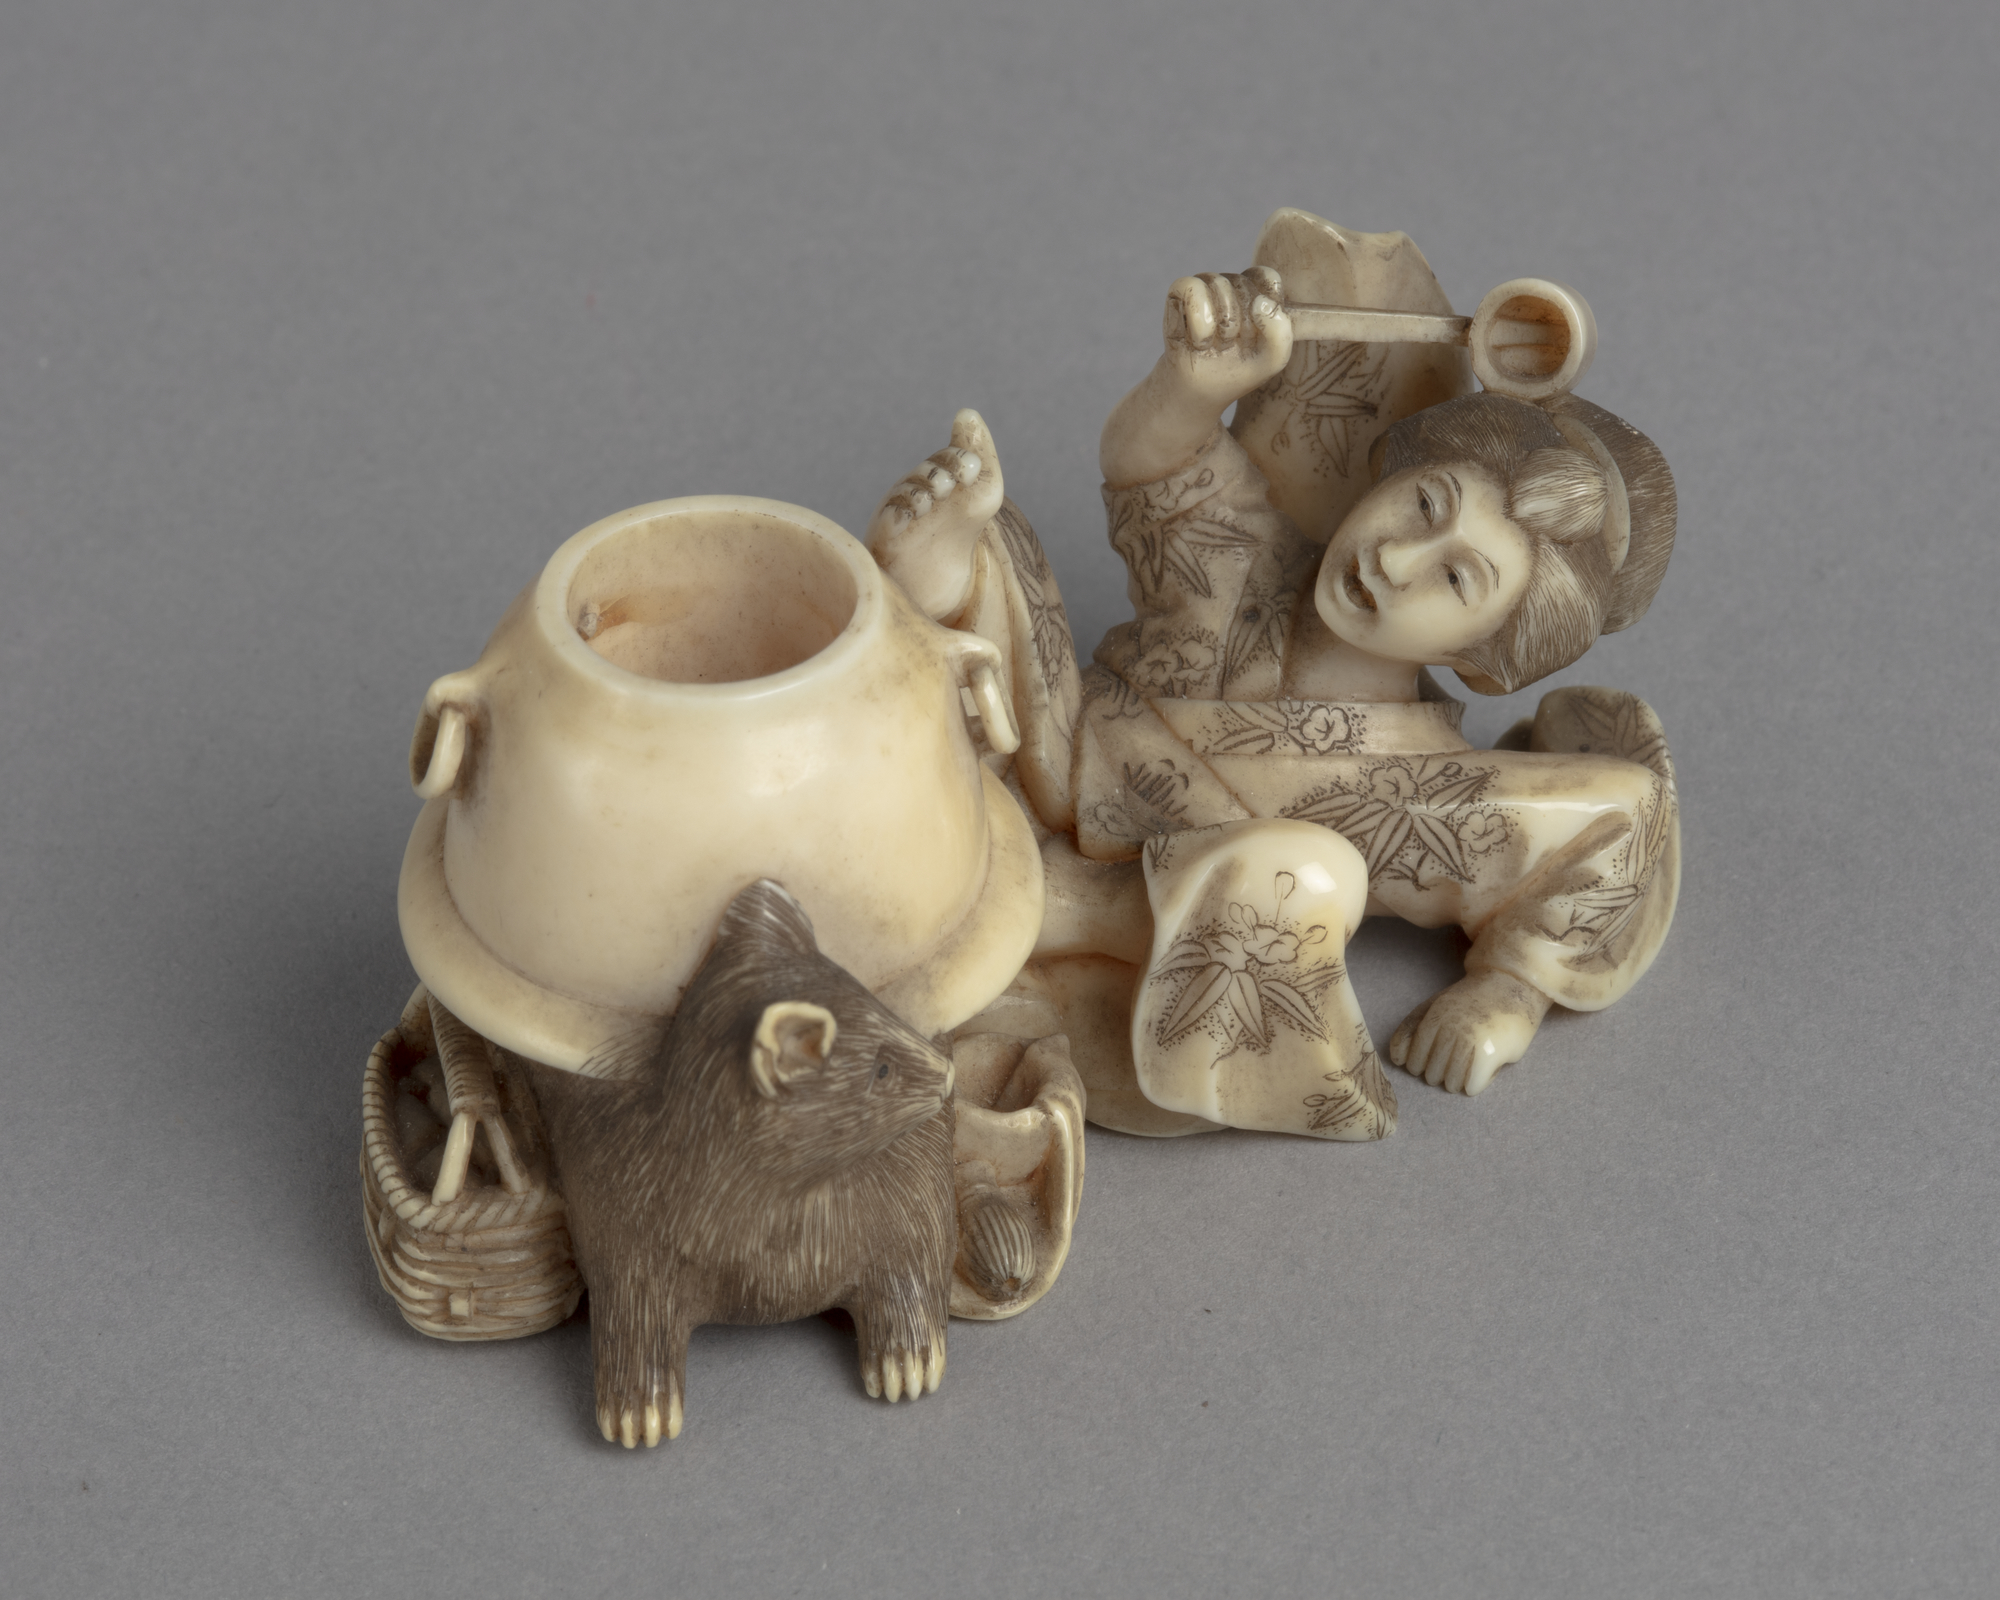 A Japanese ivory okimono ornament of a lady fallen on her back in alarm at the half-badger half-kettle before her.